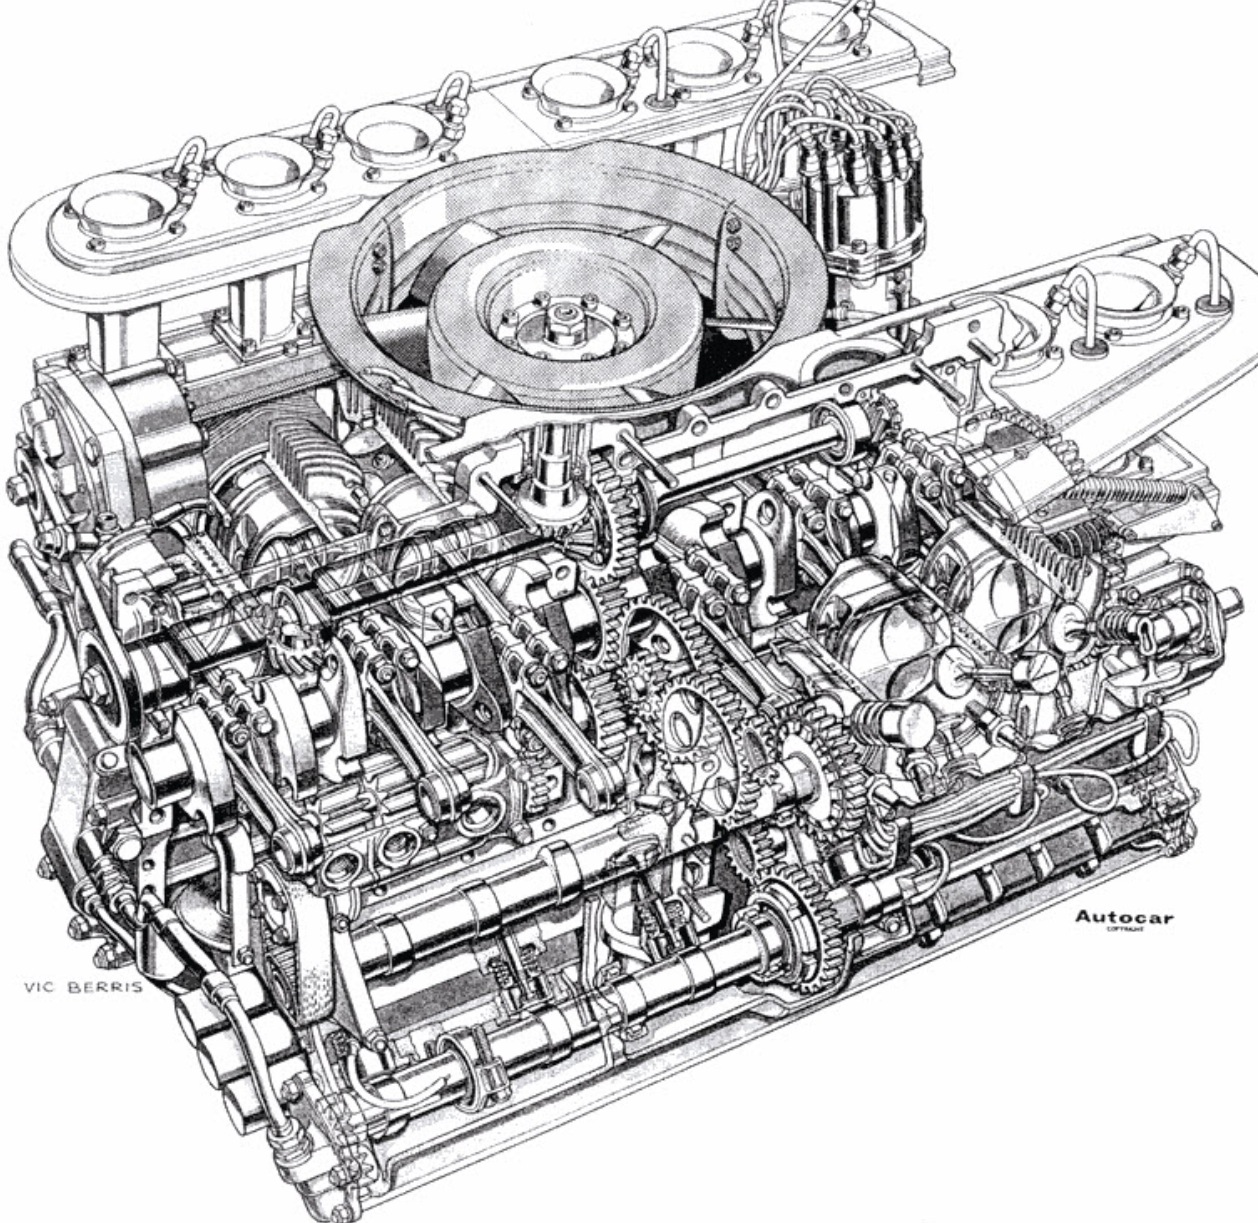 porsche 911 engine diagram of parts vip 50cc scooter wiring the amazo effect cutaway files 917